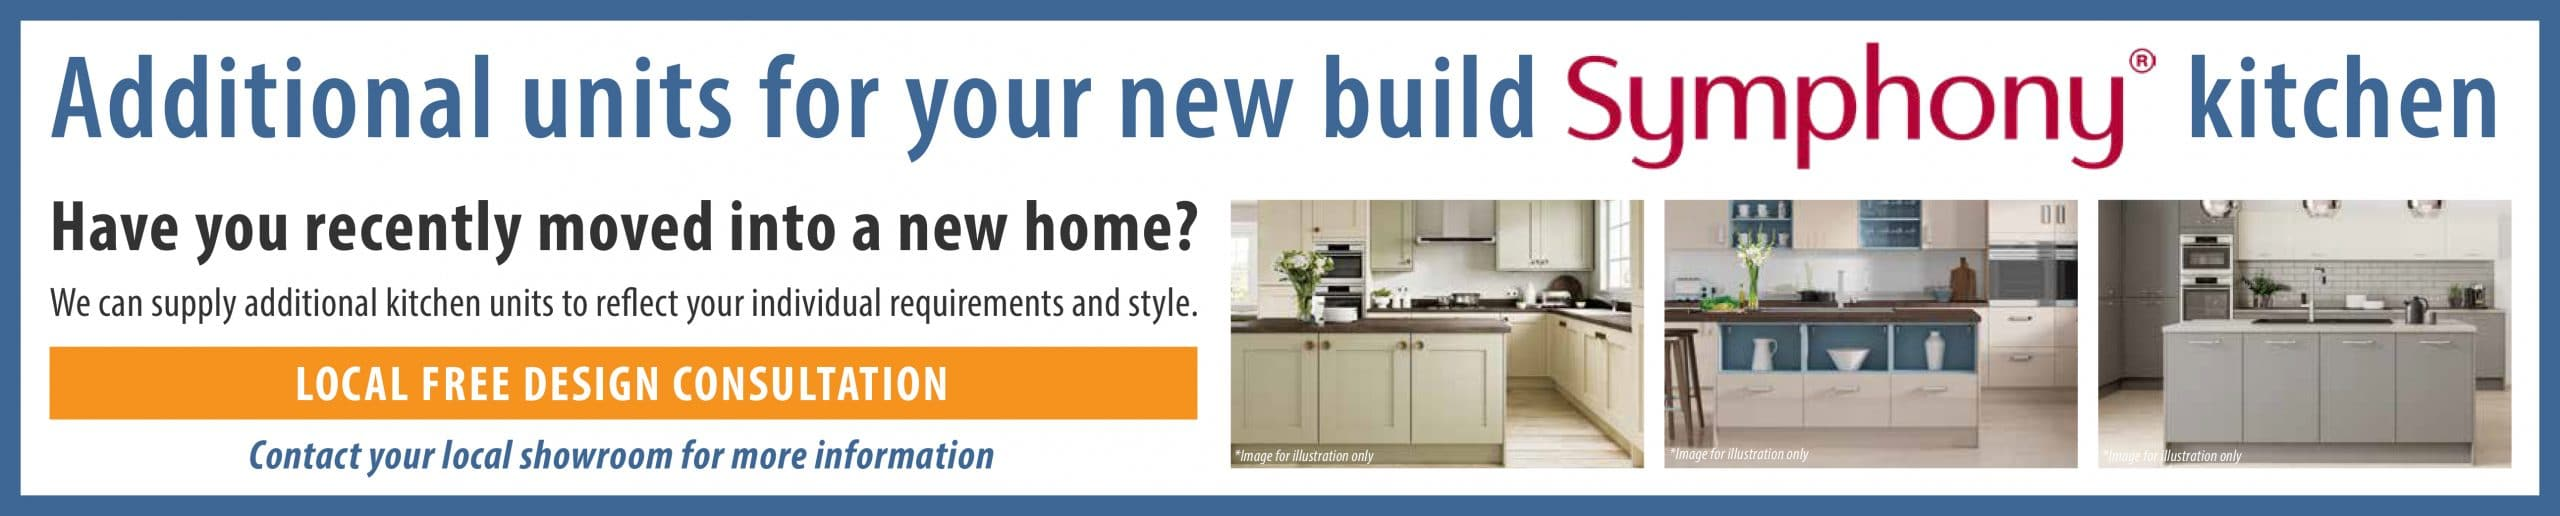 Additional units for your new build Symphony kitchen